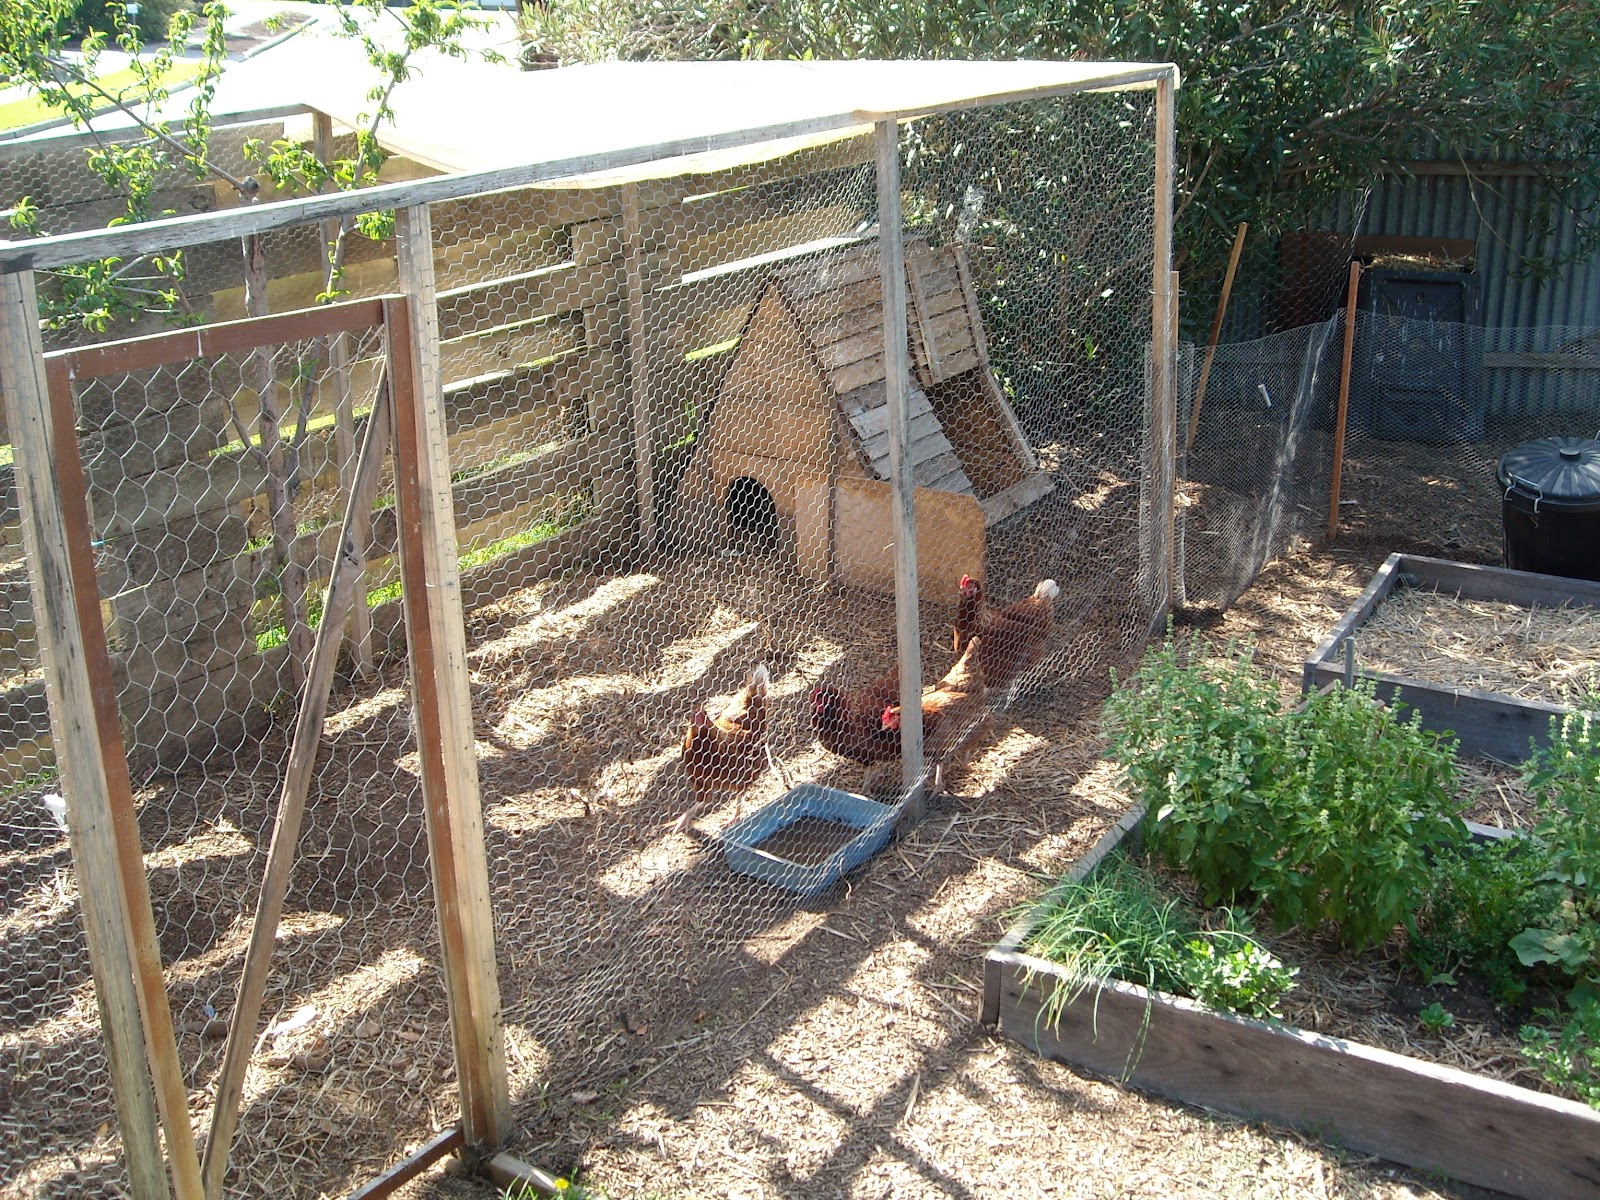 Zucchini island chicken enclosure designs be creative for Chicken enclosure ideas